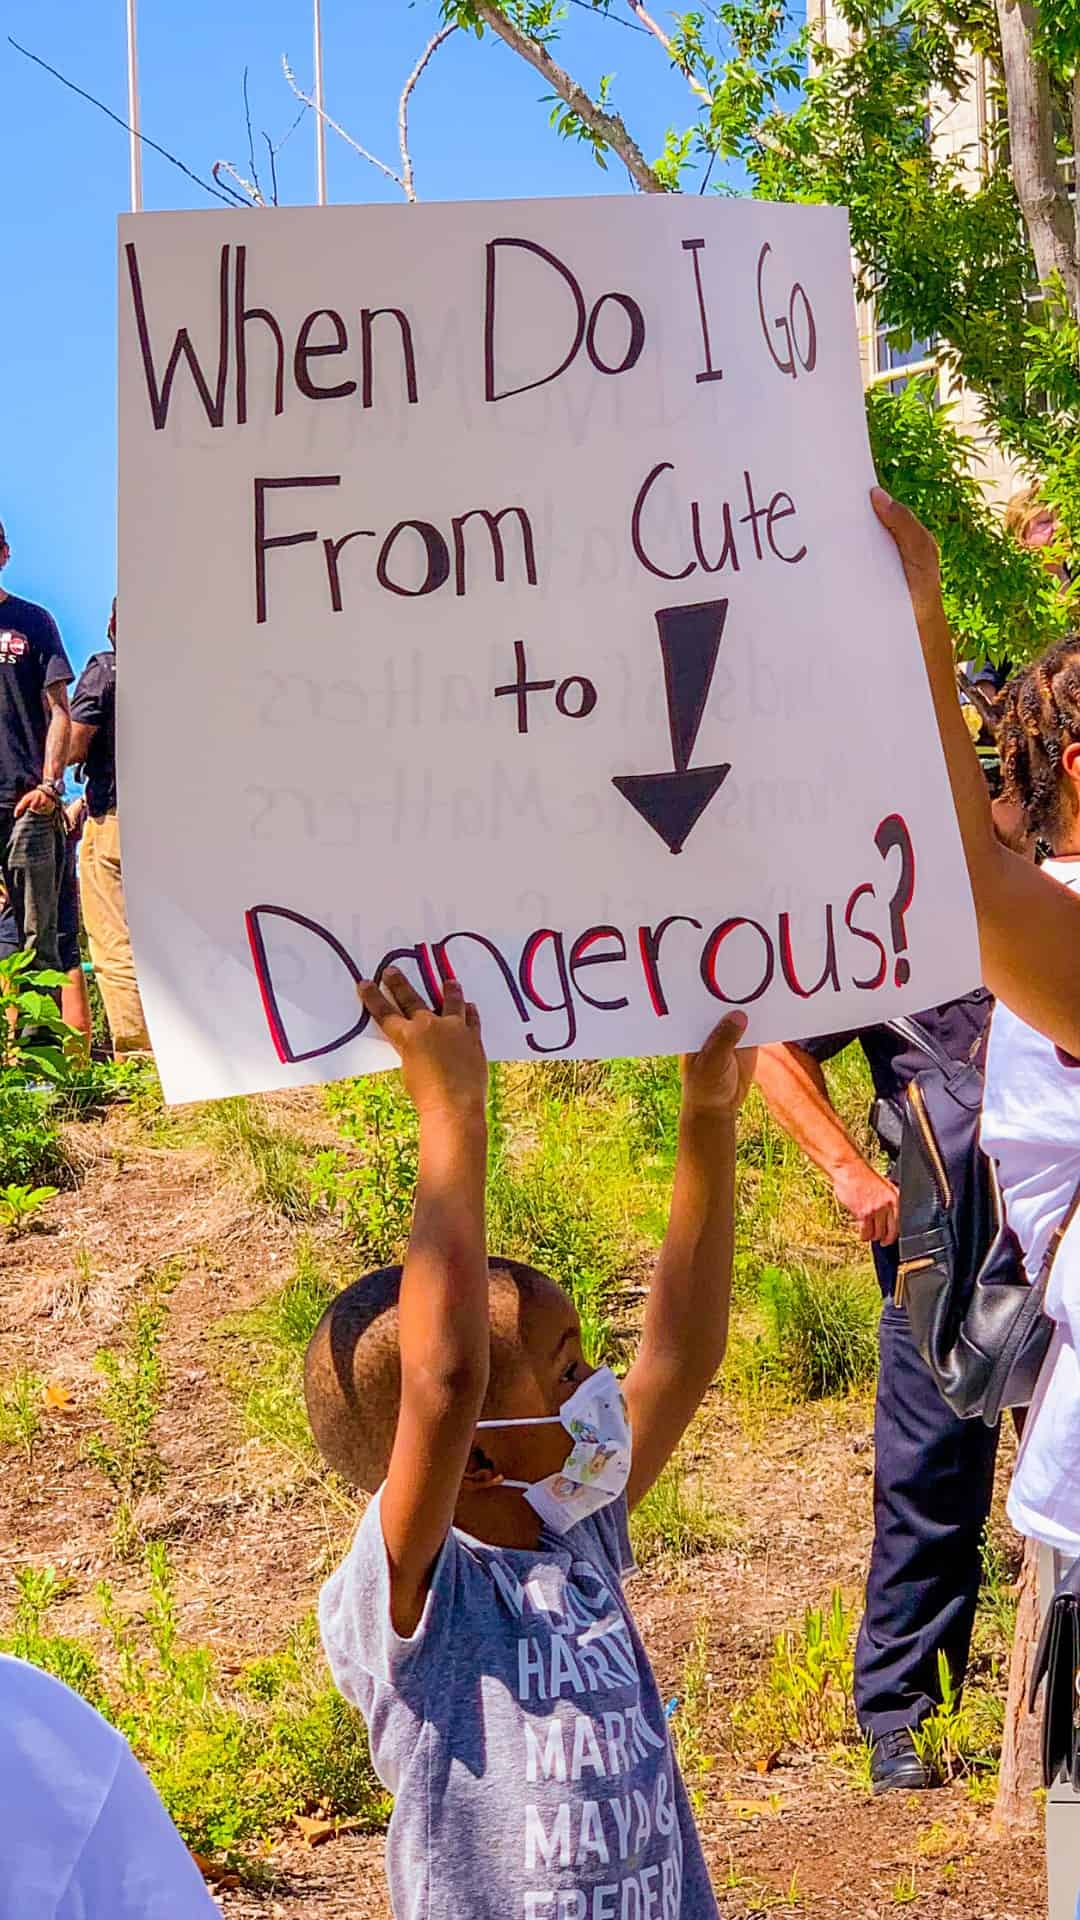 BLM Protest Signs Ideas- When did I go from cute to dangerous? protest sign